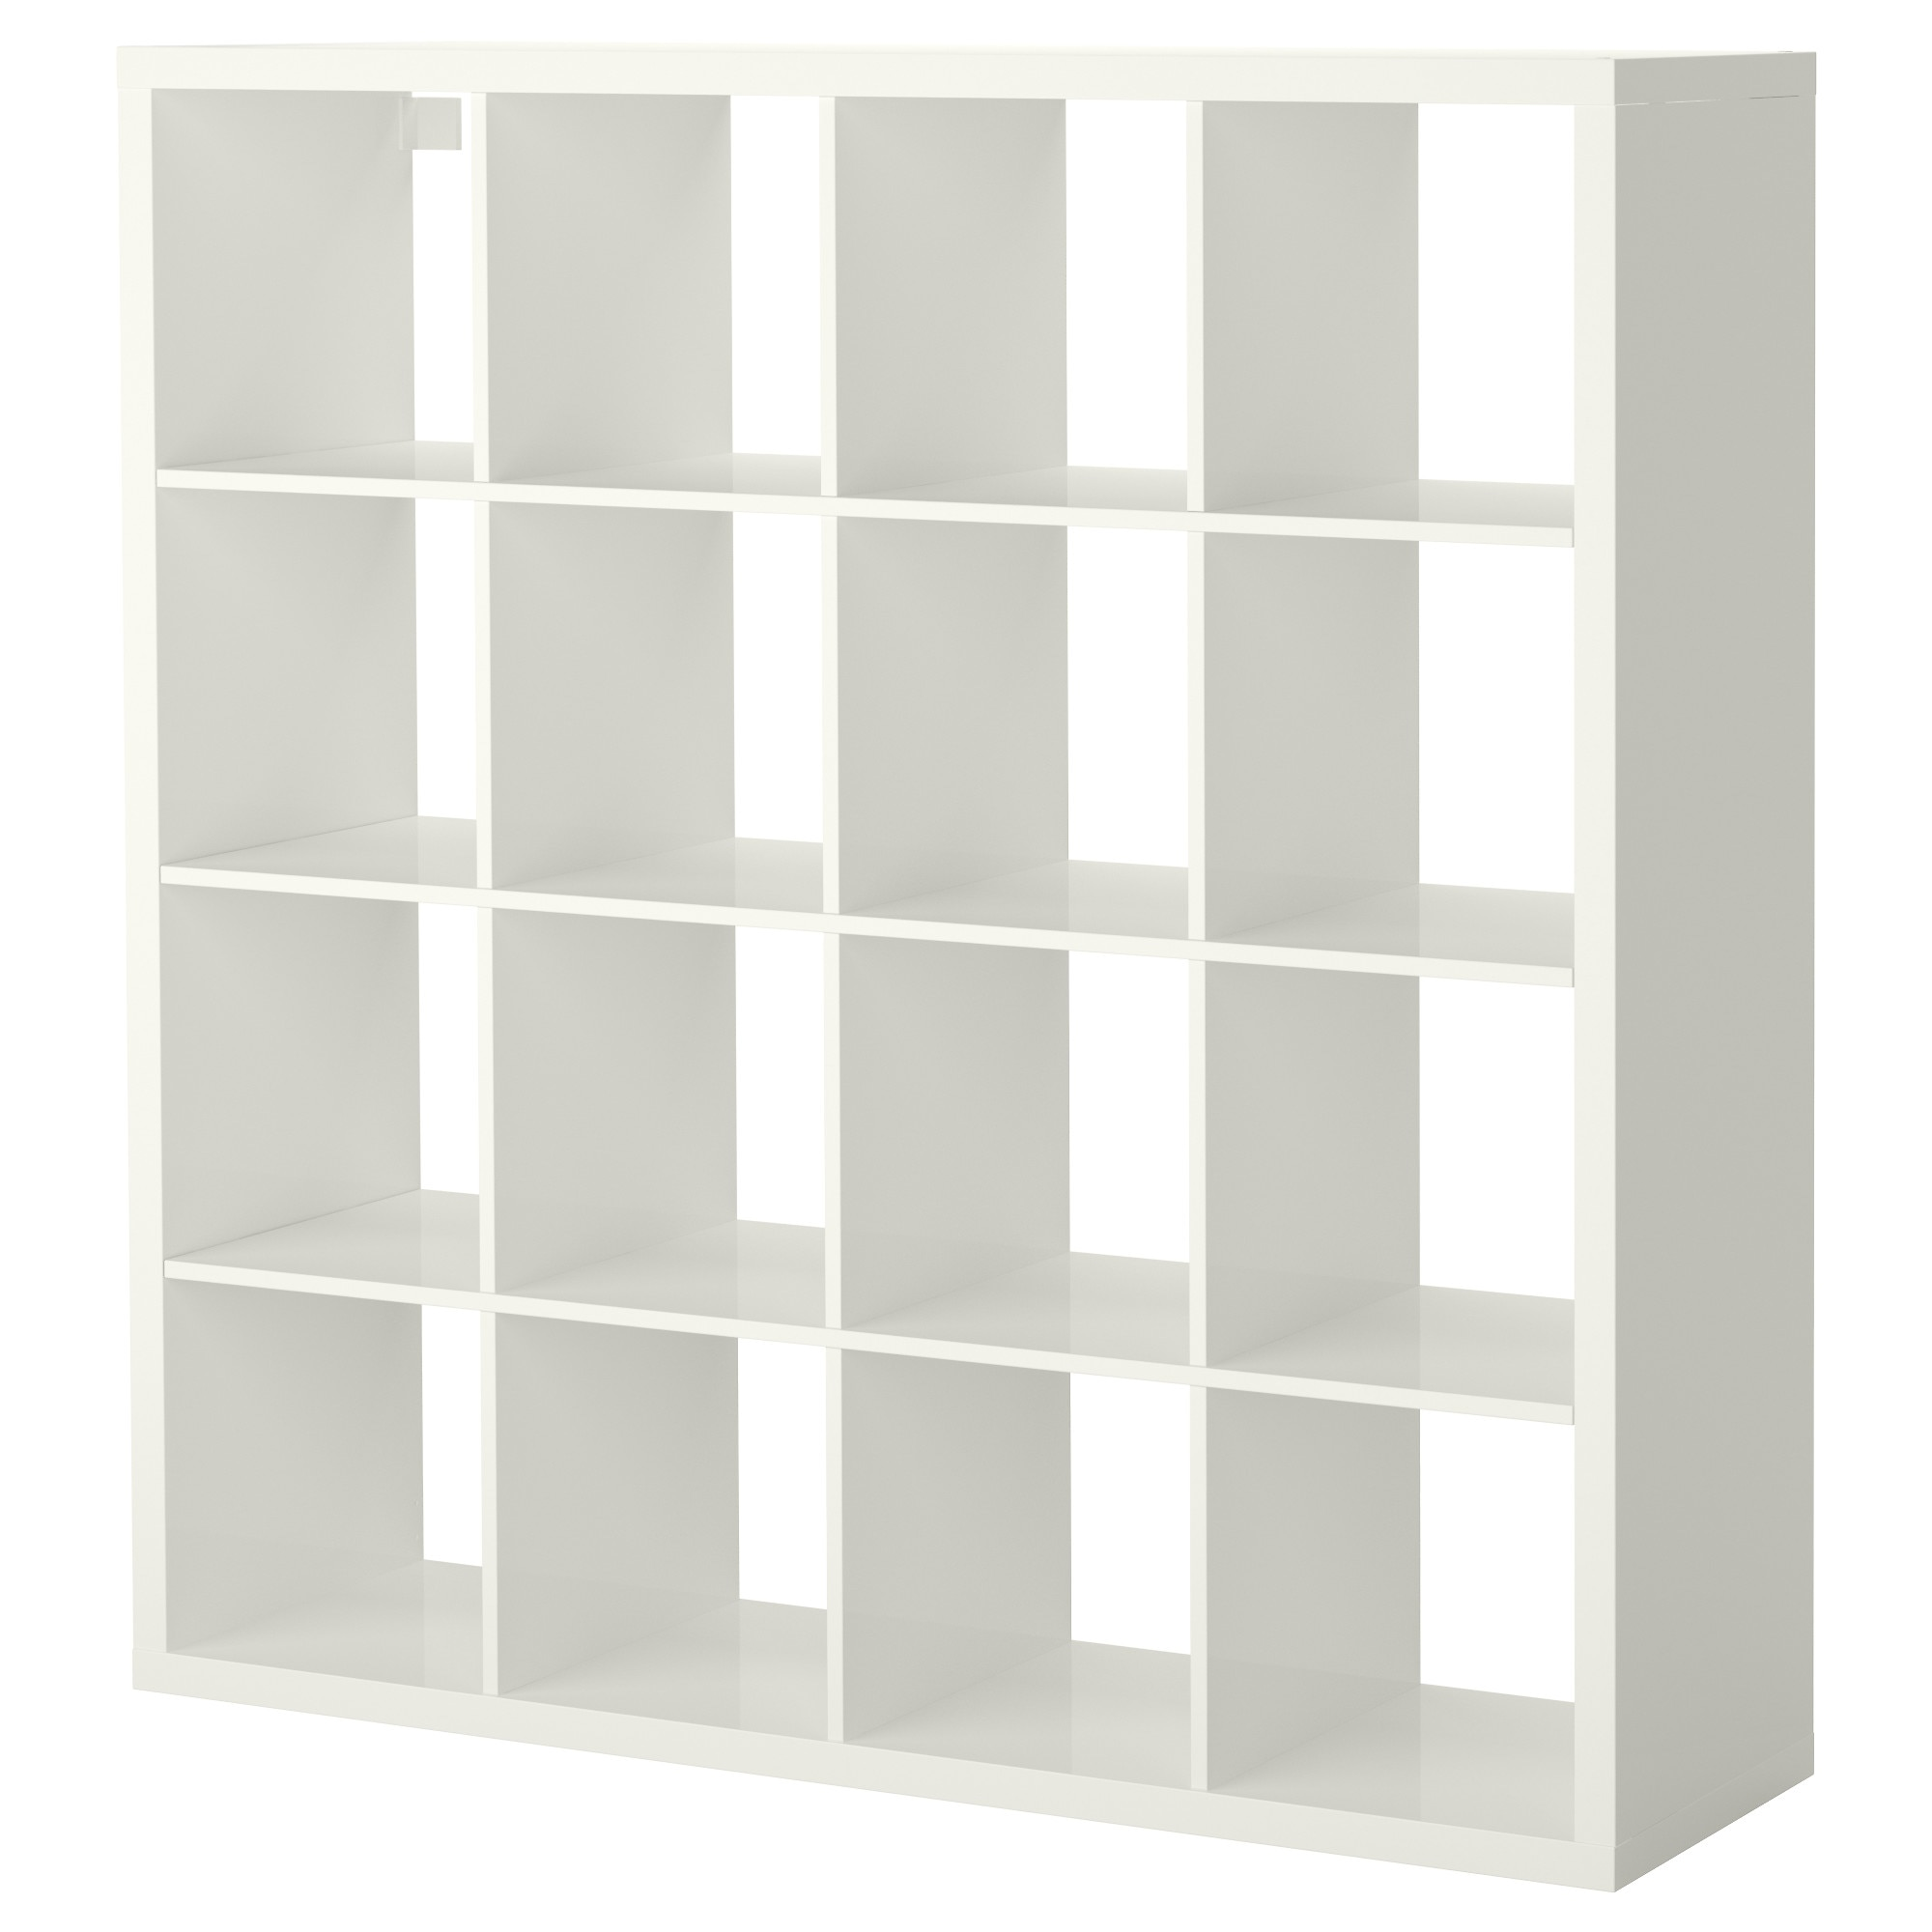 Regalsystem ikea  KALLAX Shelf unit - high gloss white - IKEA